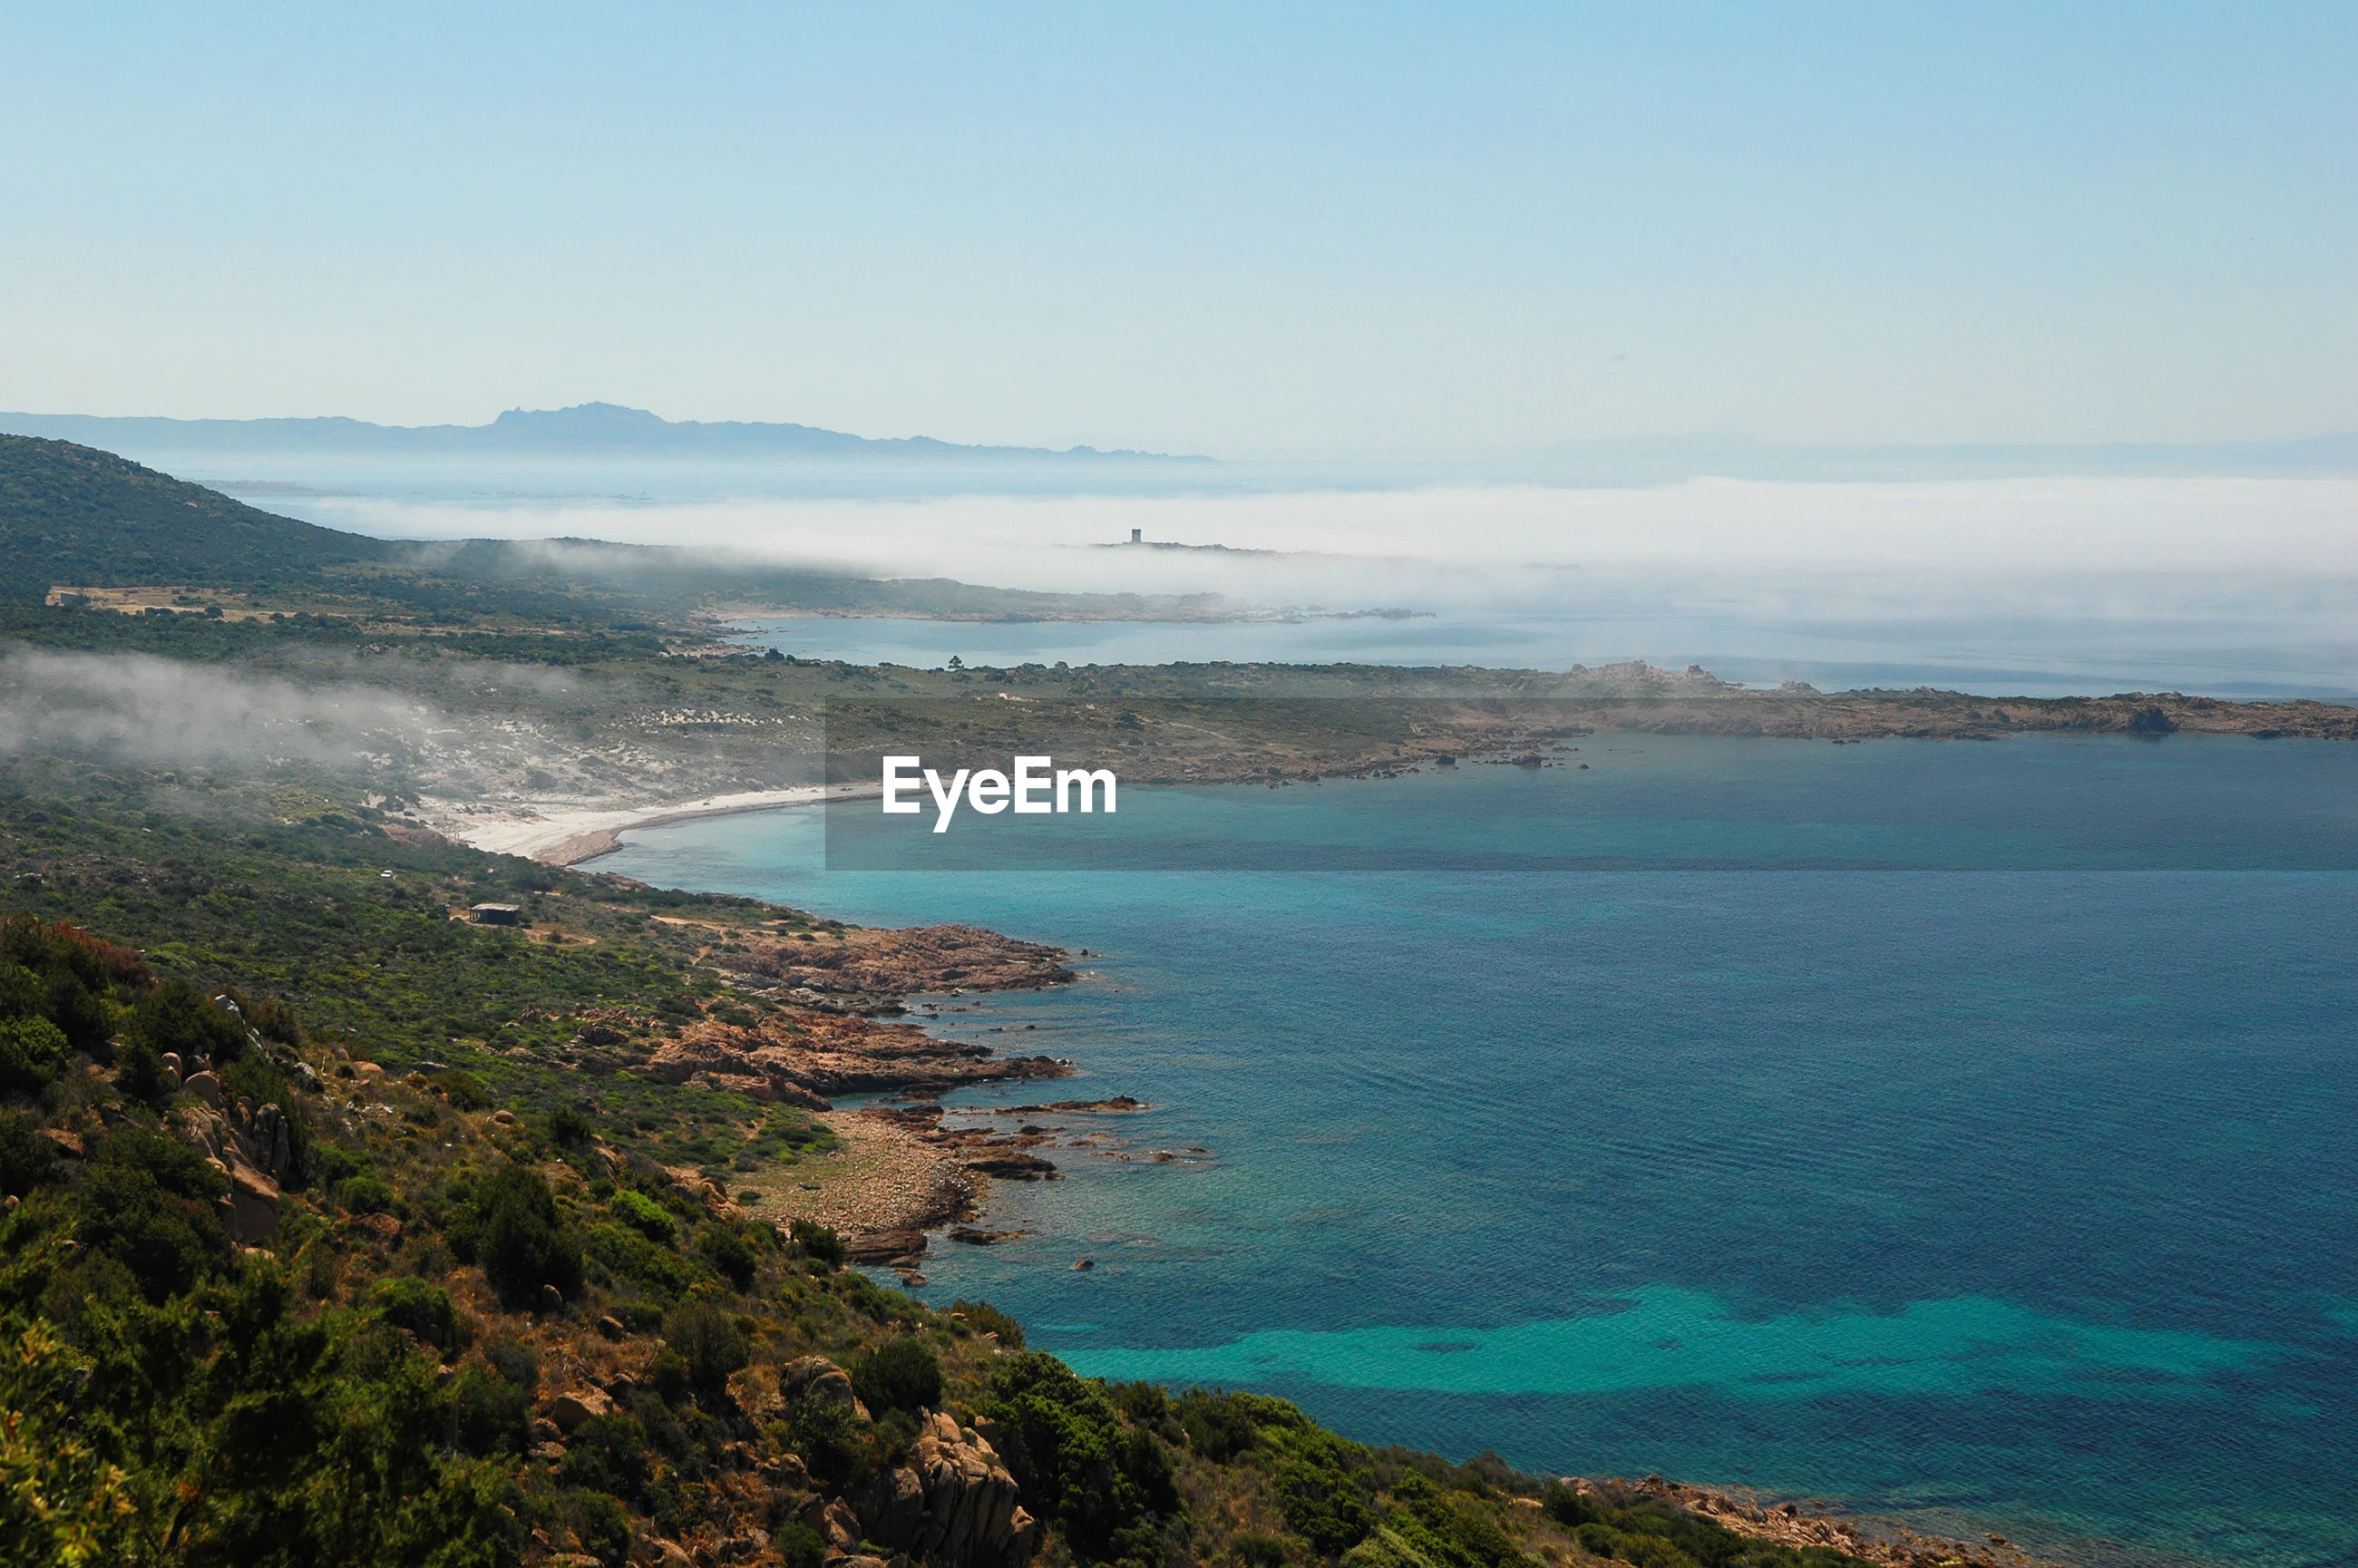 HIGH ANGLE VIEW OF SEA AND MOUNTAINS AGAINST SKY